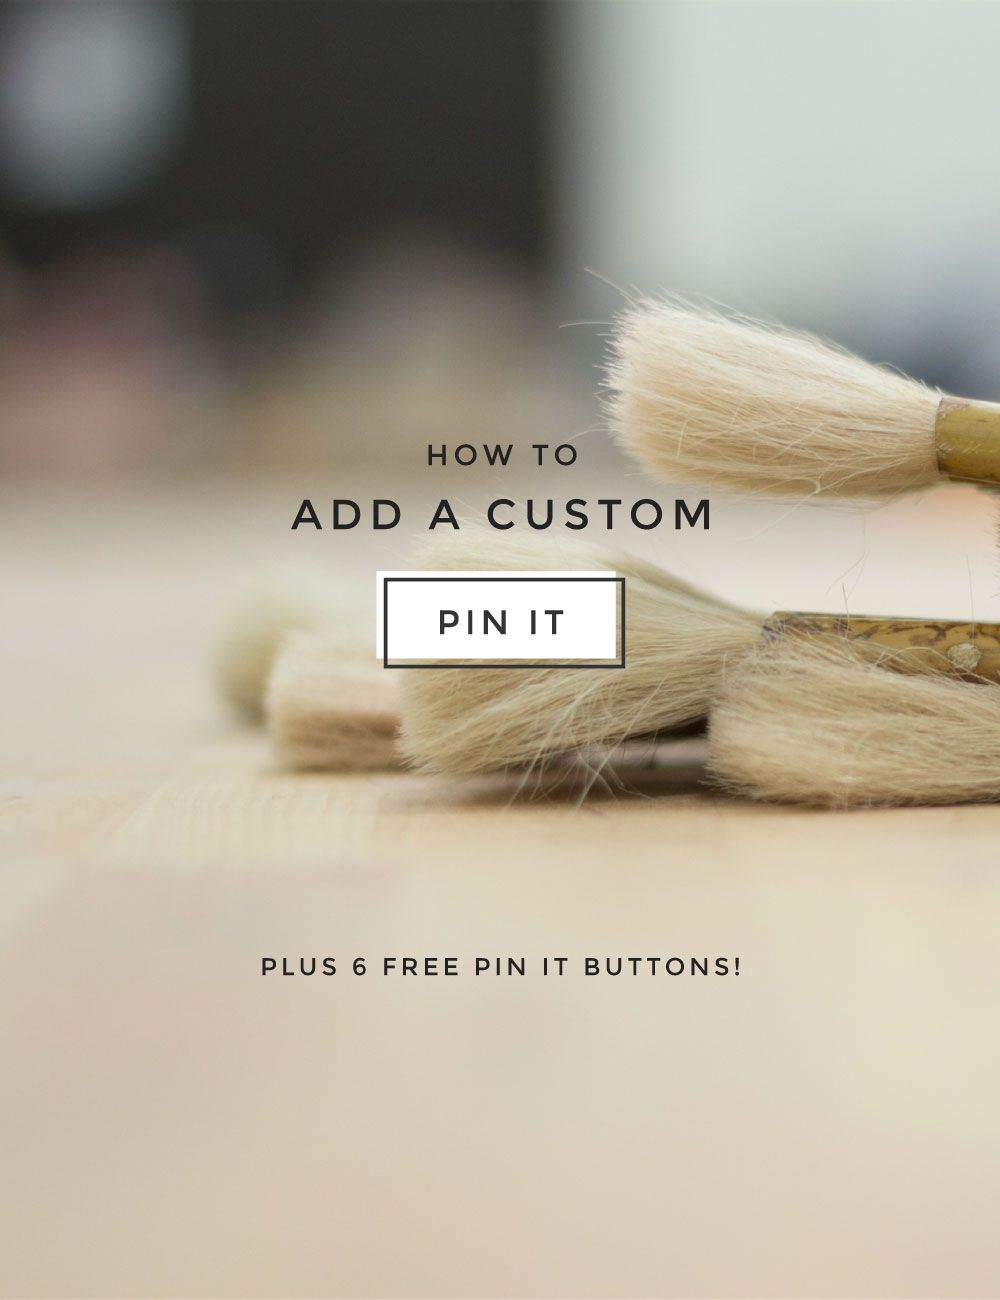 How to Add a Custom Pin It Button to WordPress (Plus 6 Free Buttons!) - Creatives in Transit